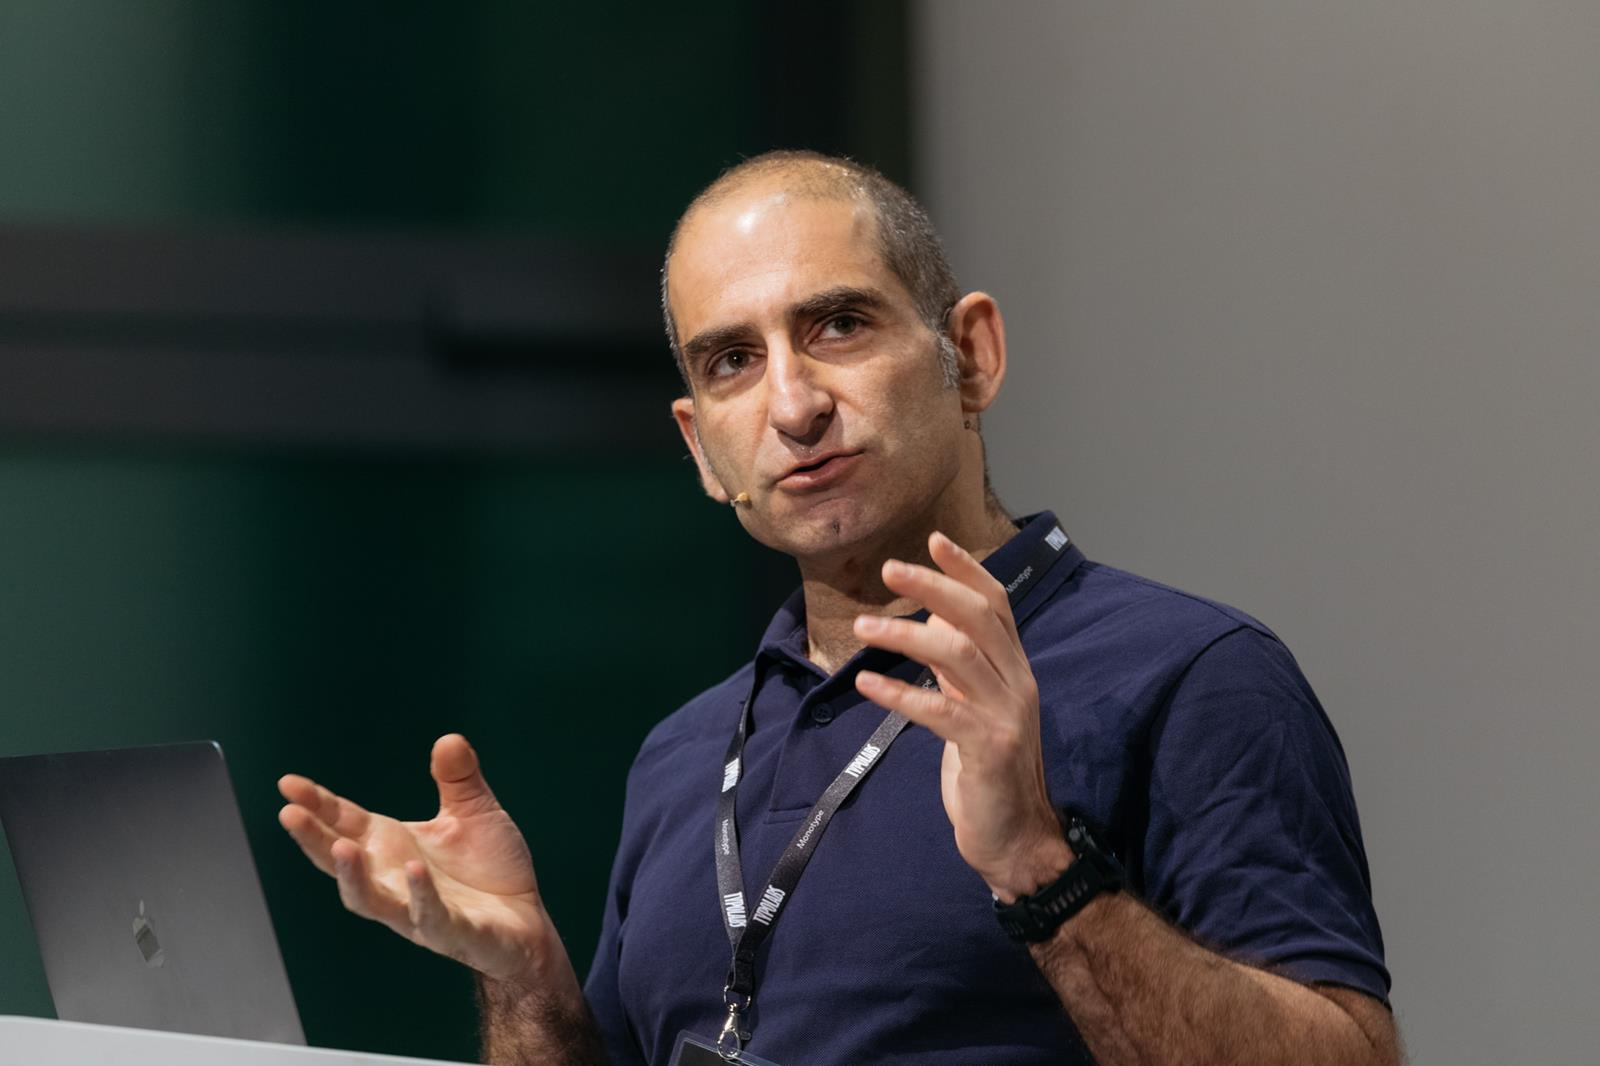 Gerry Leonidas on Variable Fonts